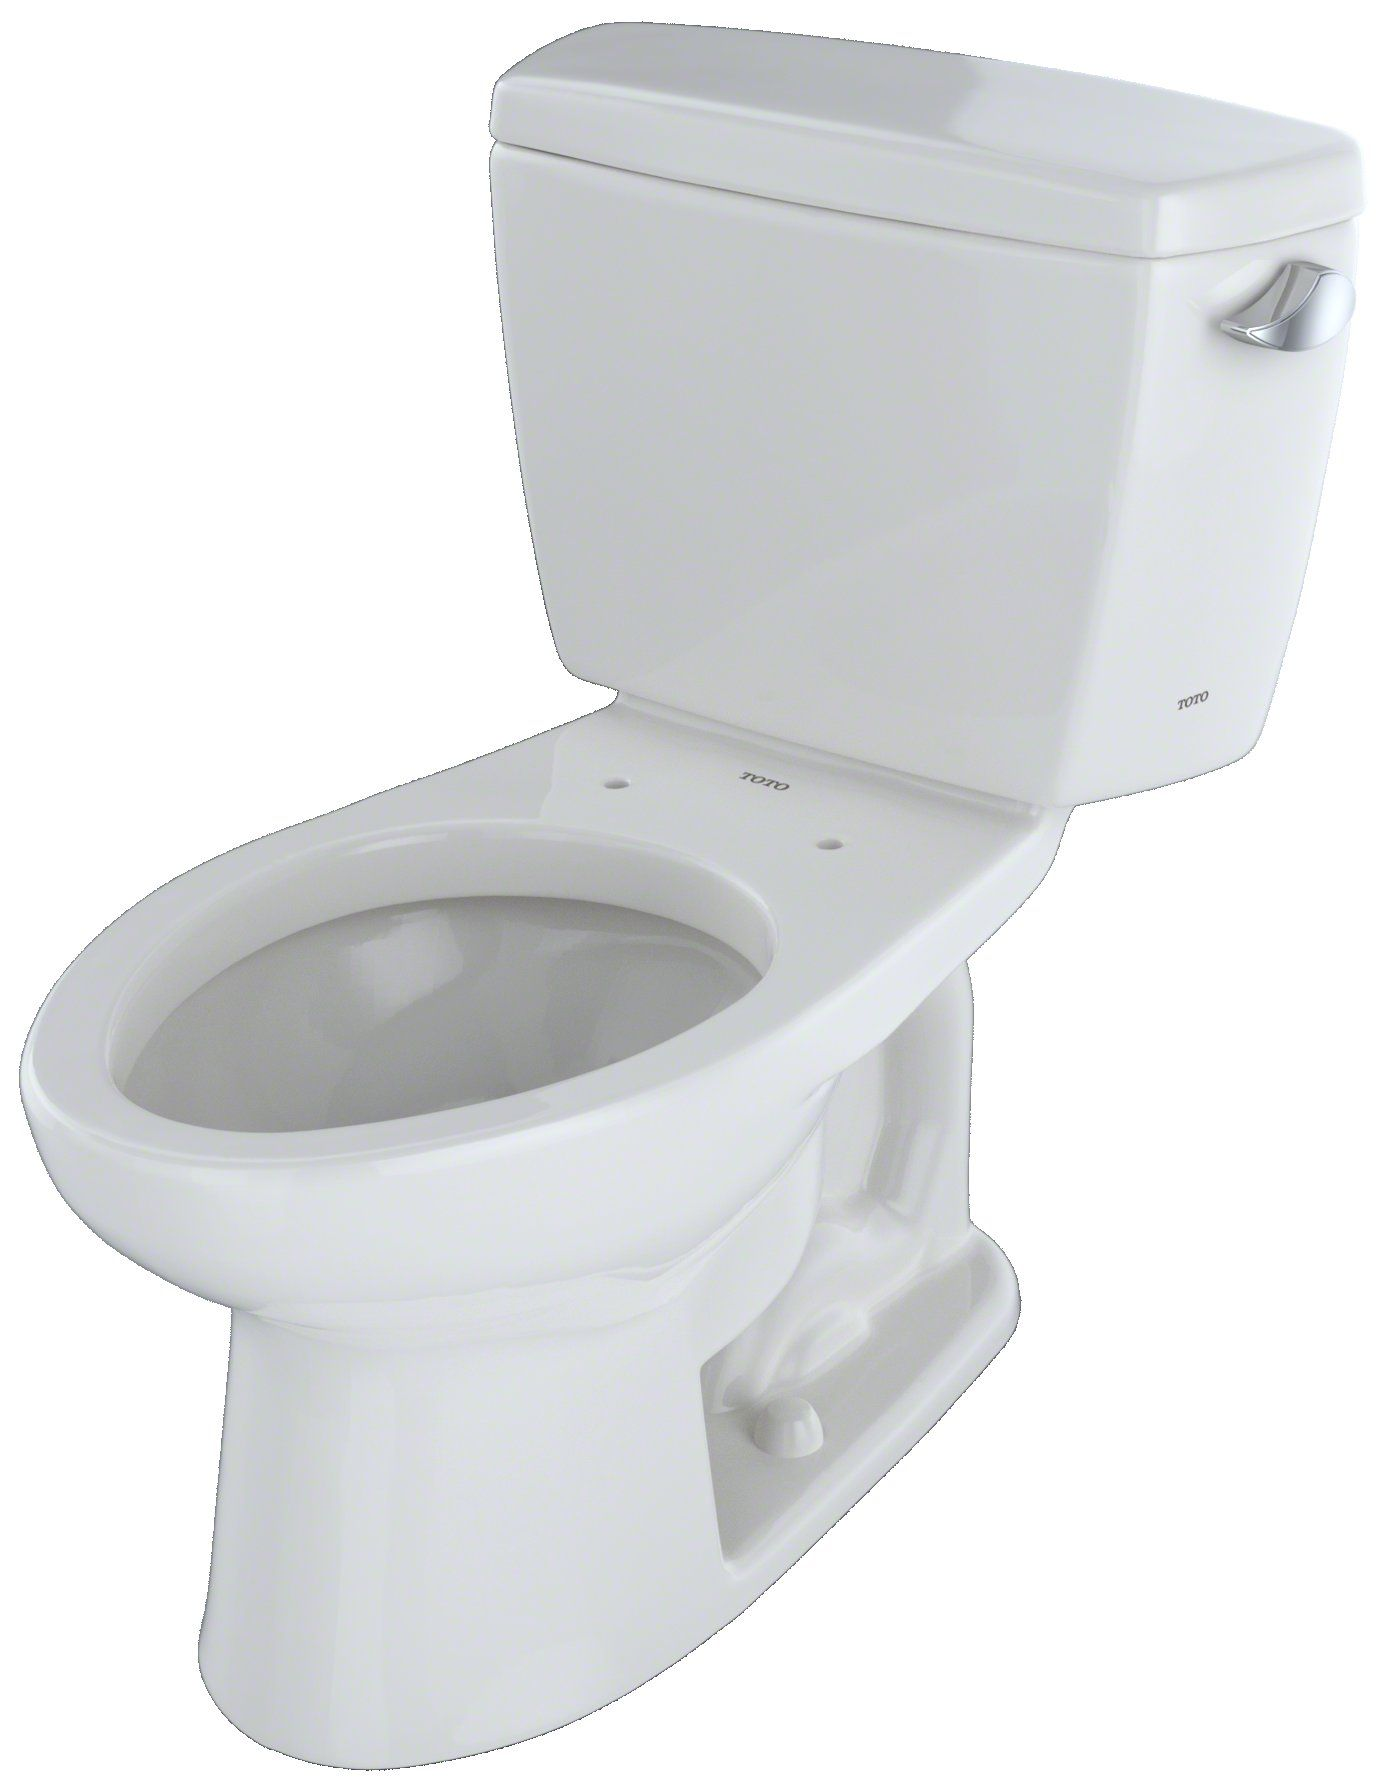 Drake® Dual Flush Elongated Two-Piece Toilet   Products   Pinterest ...